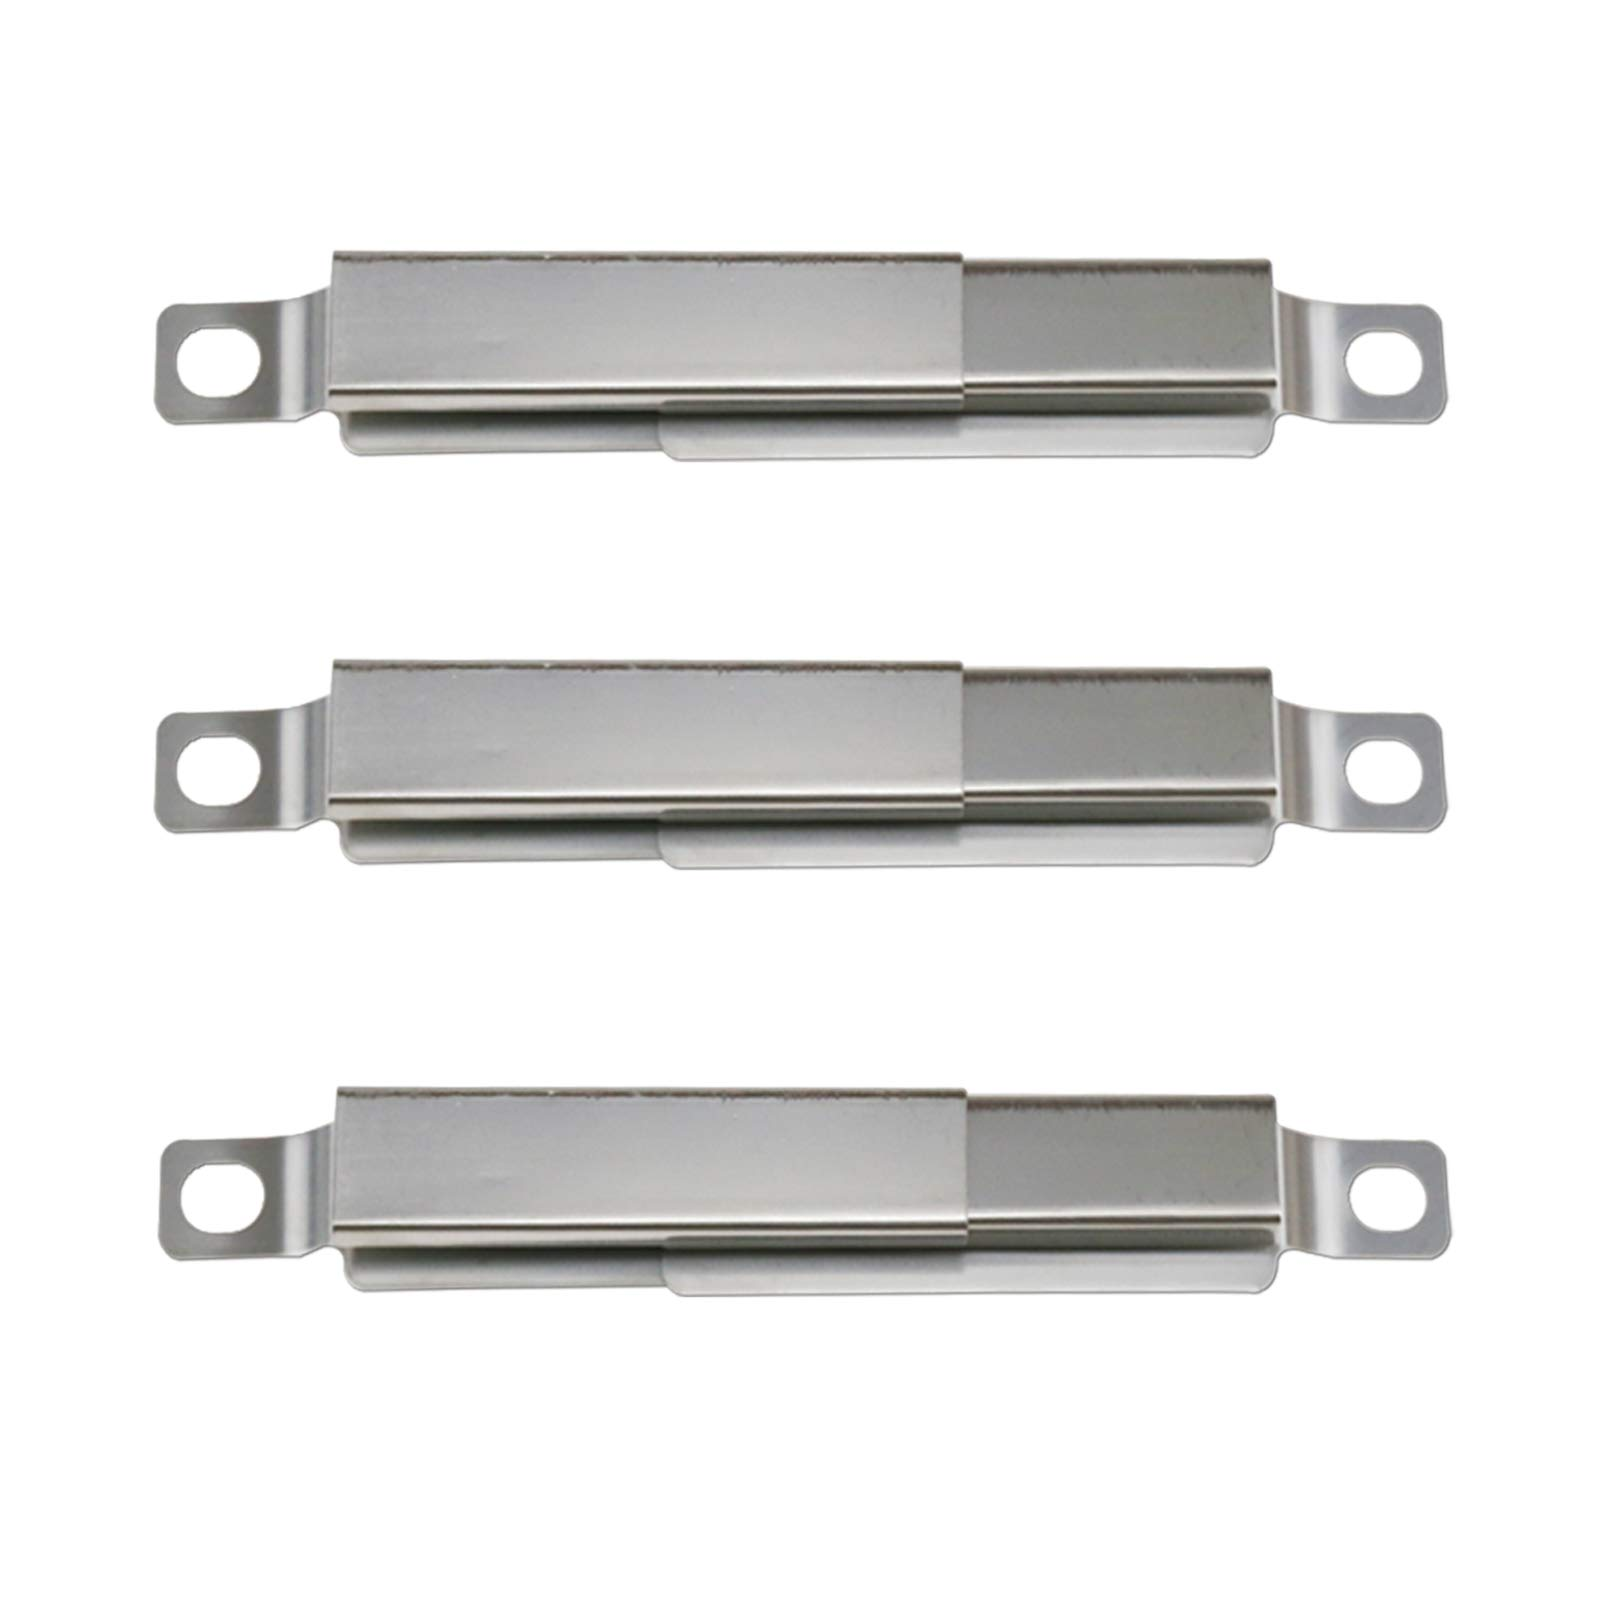 Hisencn BBQ Stainless Burner Tube, Heat Plates Tent Shield, Burner Cover, Adjust Crossover Tube Replacement for BBQ-pro 146.2367631, Kenmore 146.10016510, 146.16198211, 146.16197210 Gas Grill Models by Hisencn (Image #7)